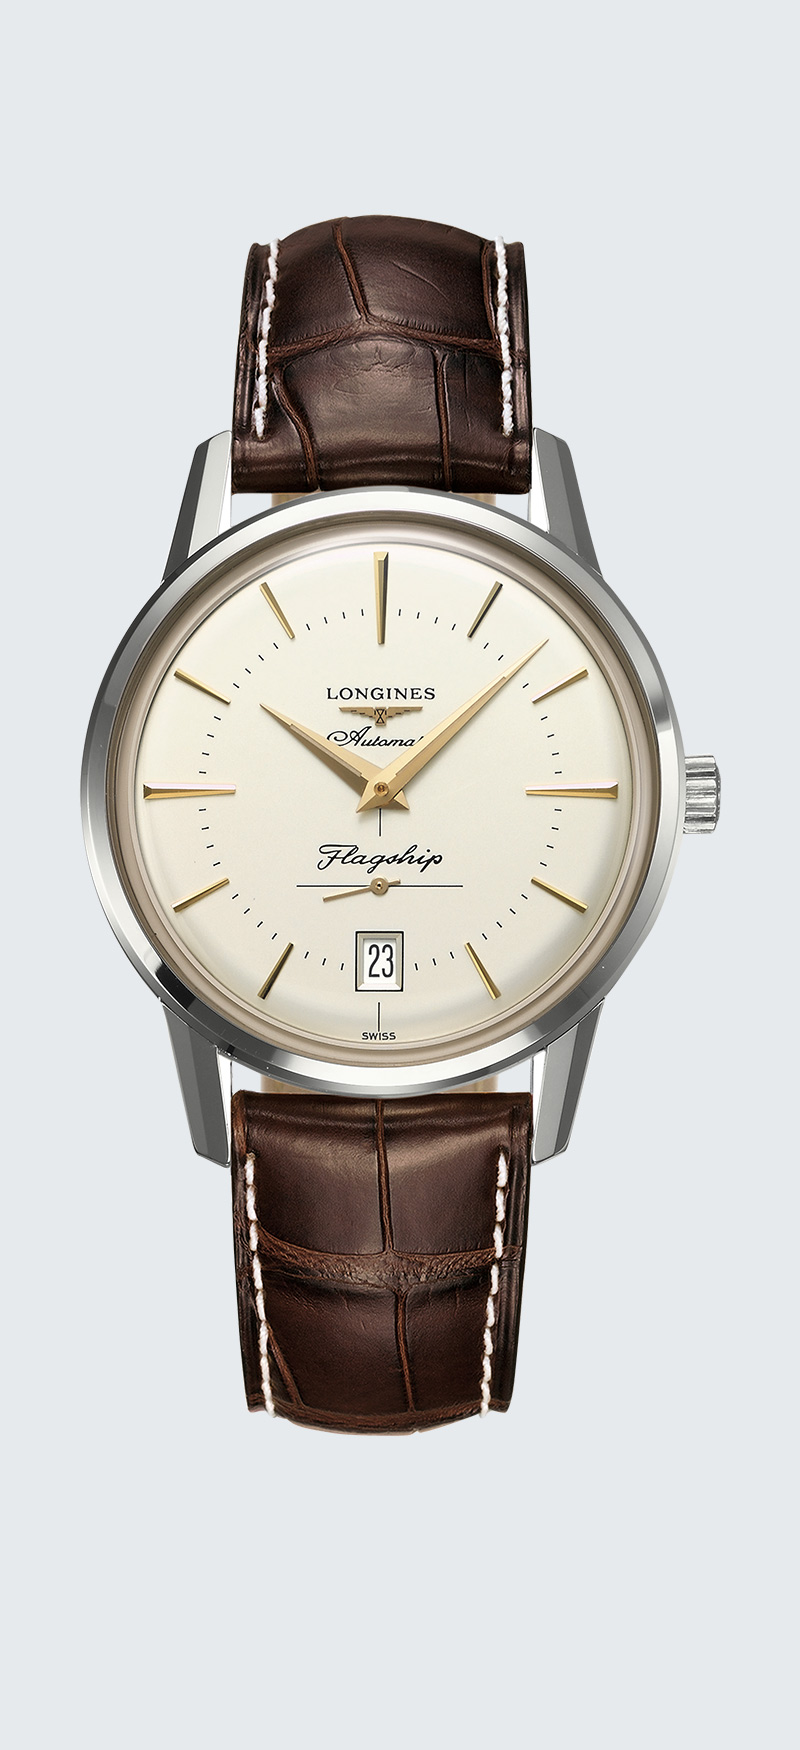 Name:  watch-heritage-collection--L4_795_4_78_2-800x1750.jpg Views: 108 Size:  205.4 KB